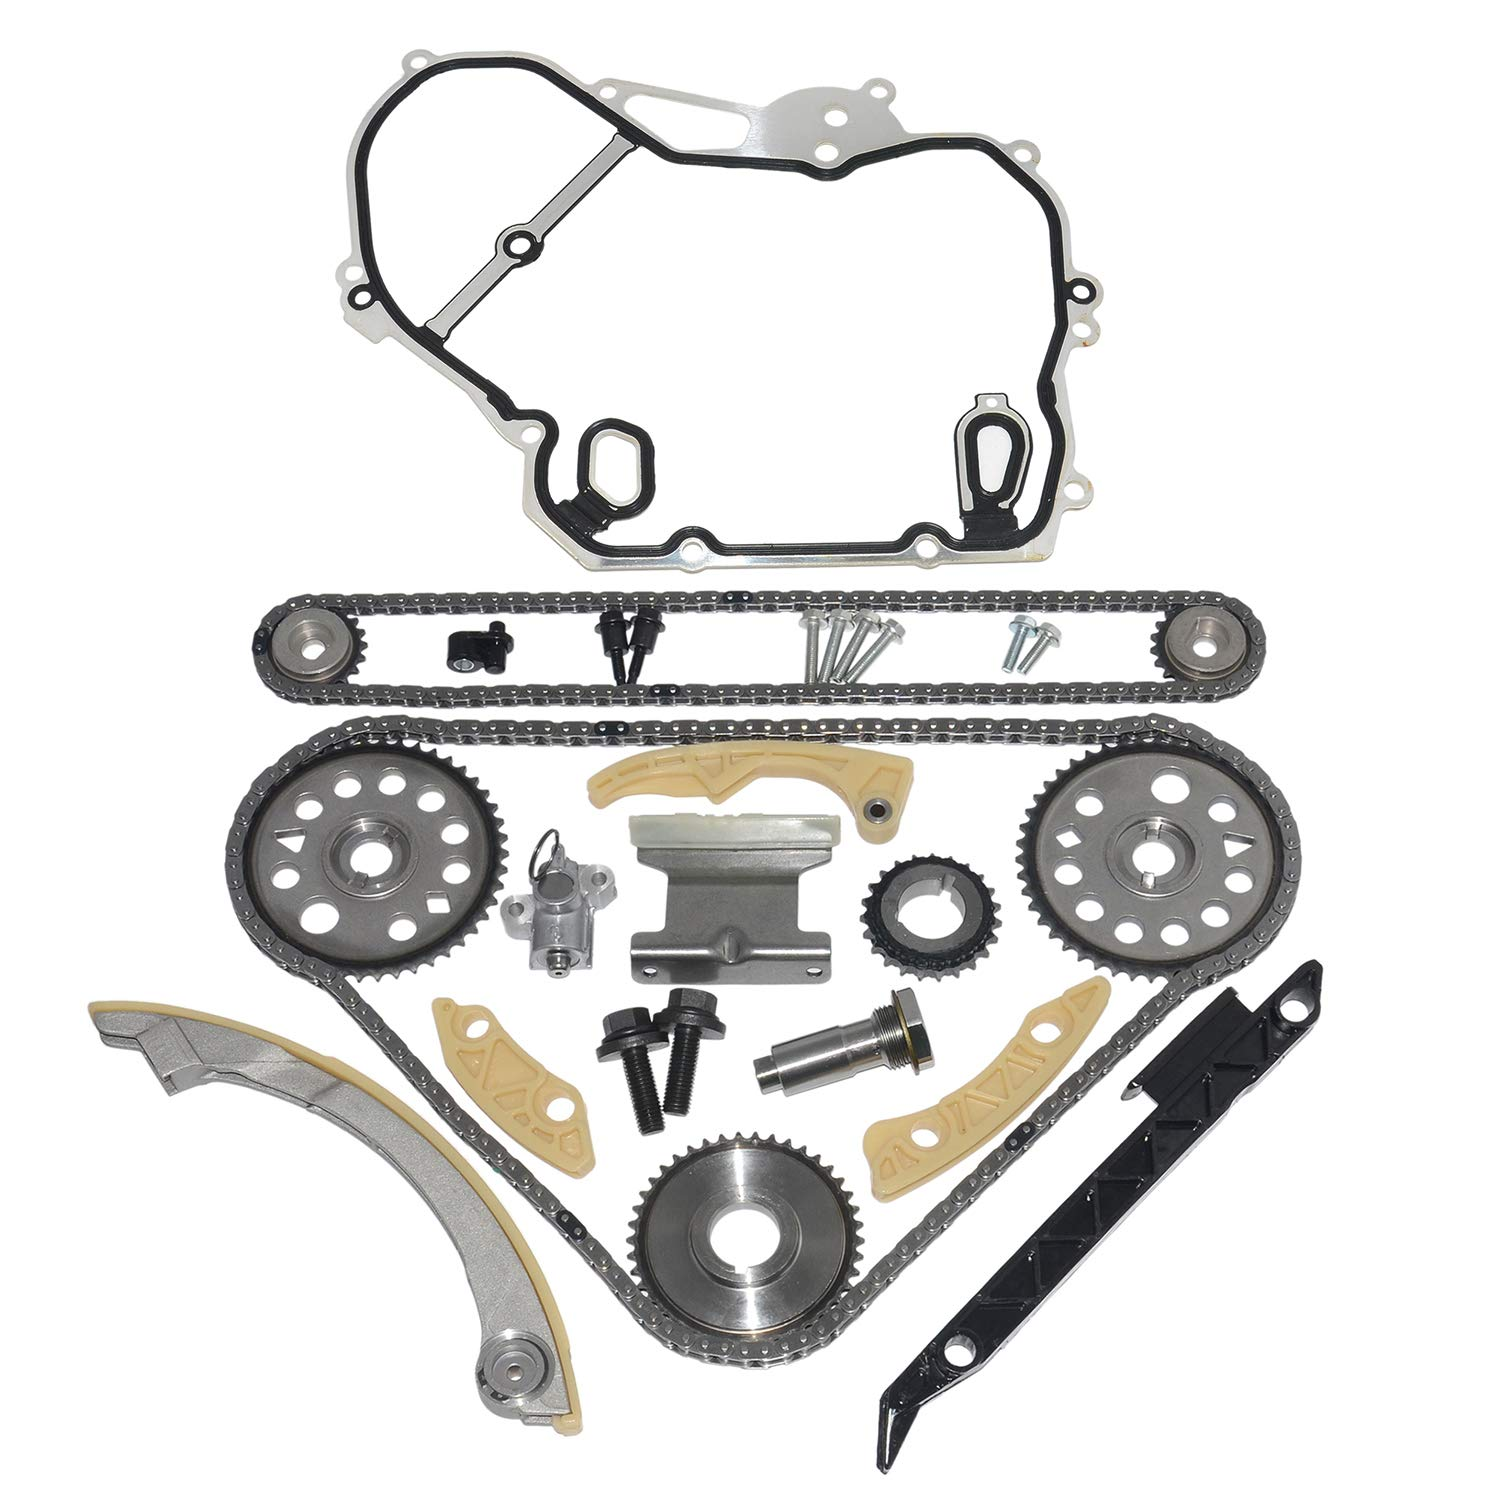 12788929 24461834 Timing Chain+Gear+Guide+Tensioner Kit+Cover Gasket Kit Compatible For BUICK Chevrolet SATURN Pontiac 2.0L 2.2L 2.4L